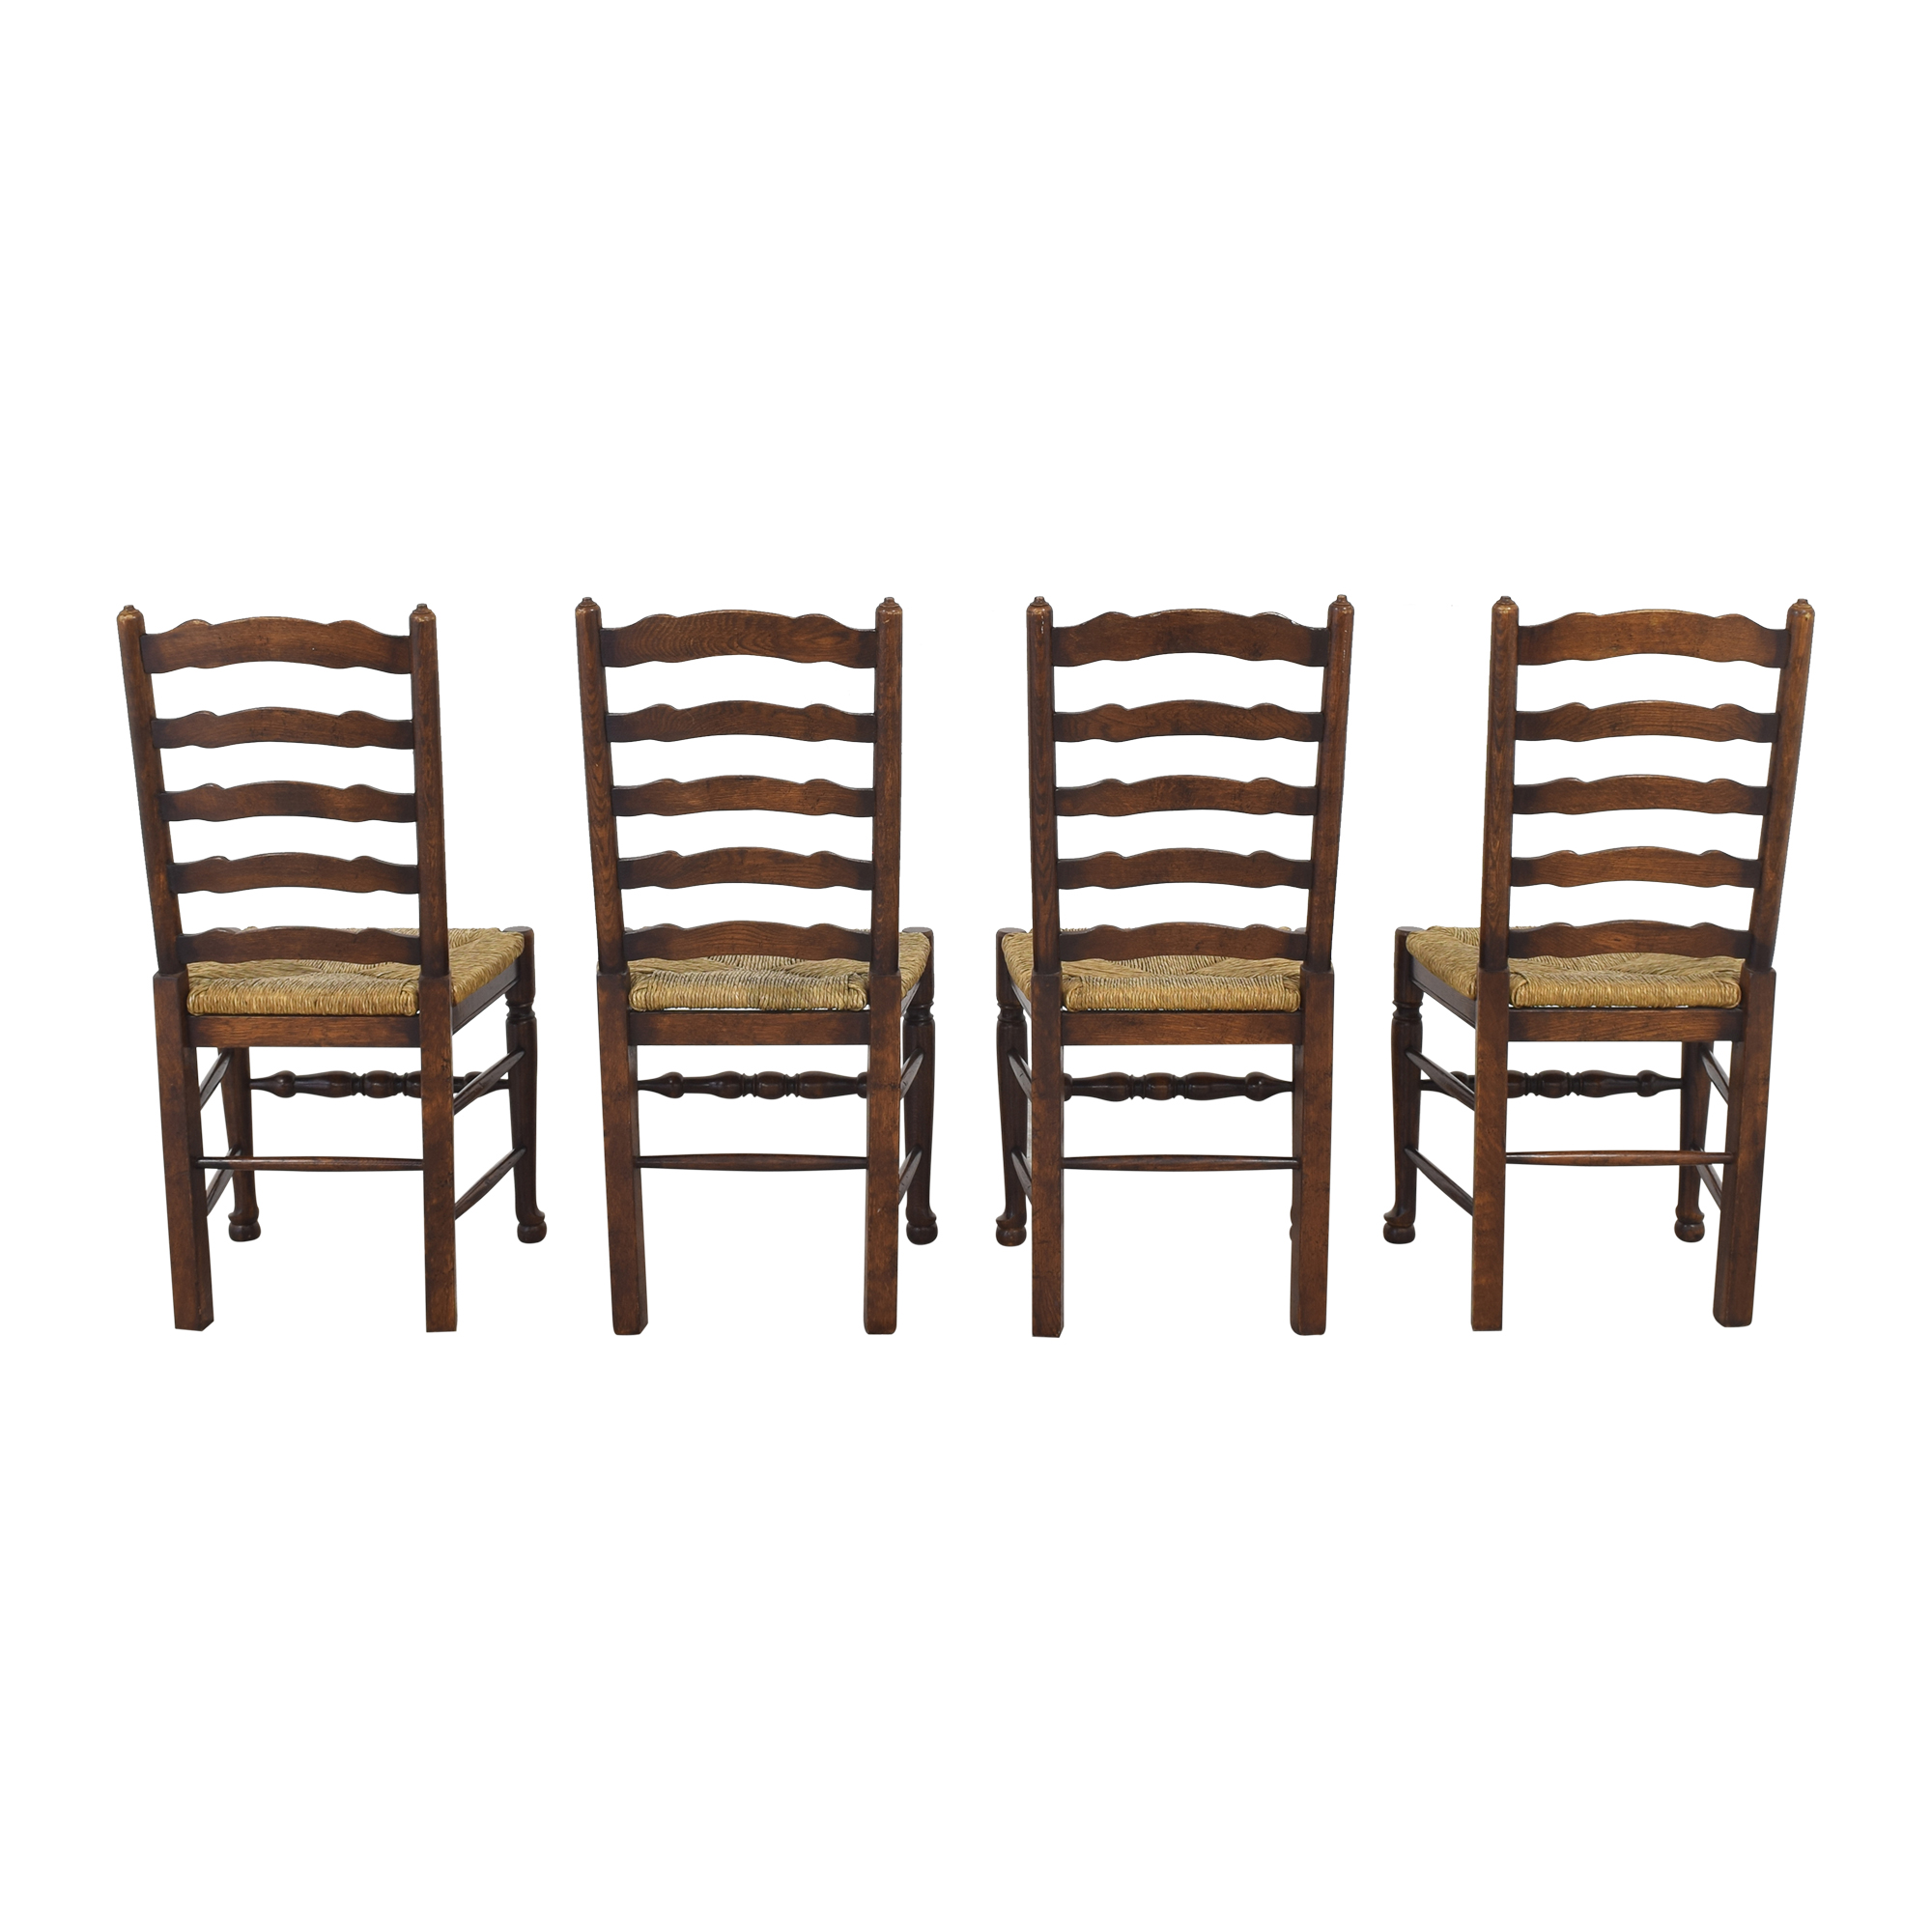 Pottery Barn Pottery Barn Ladder Back Dining Chairs dimensions